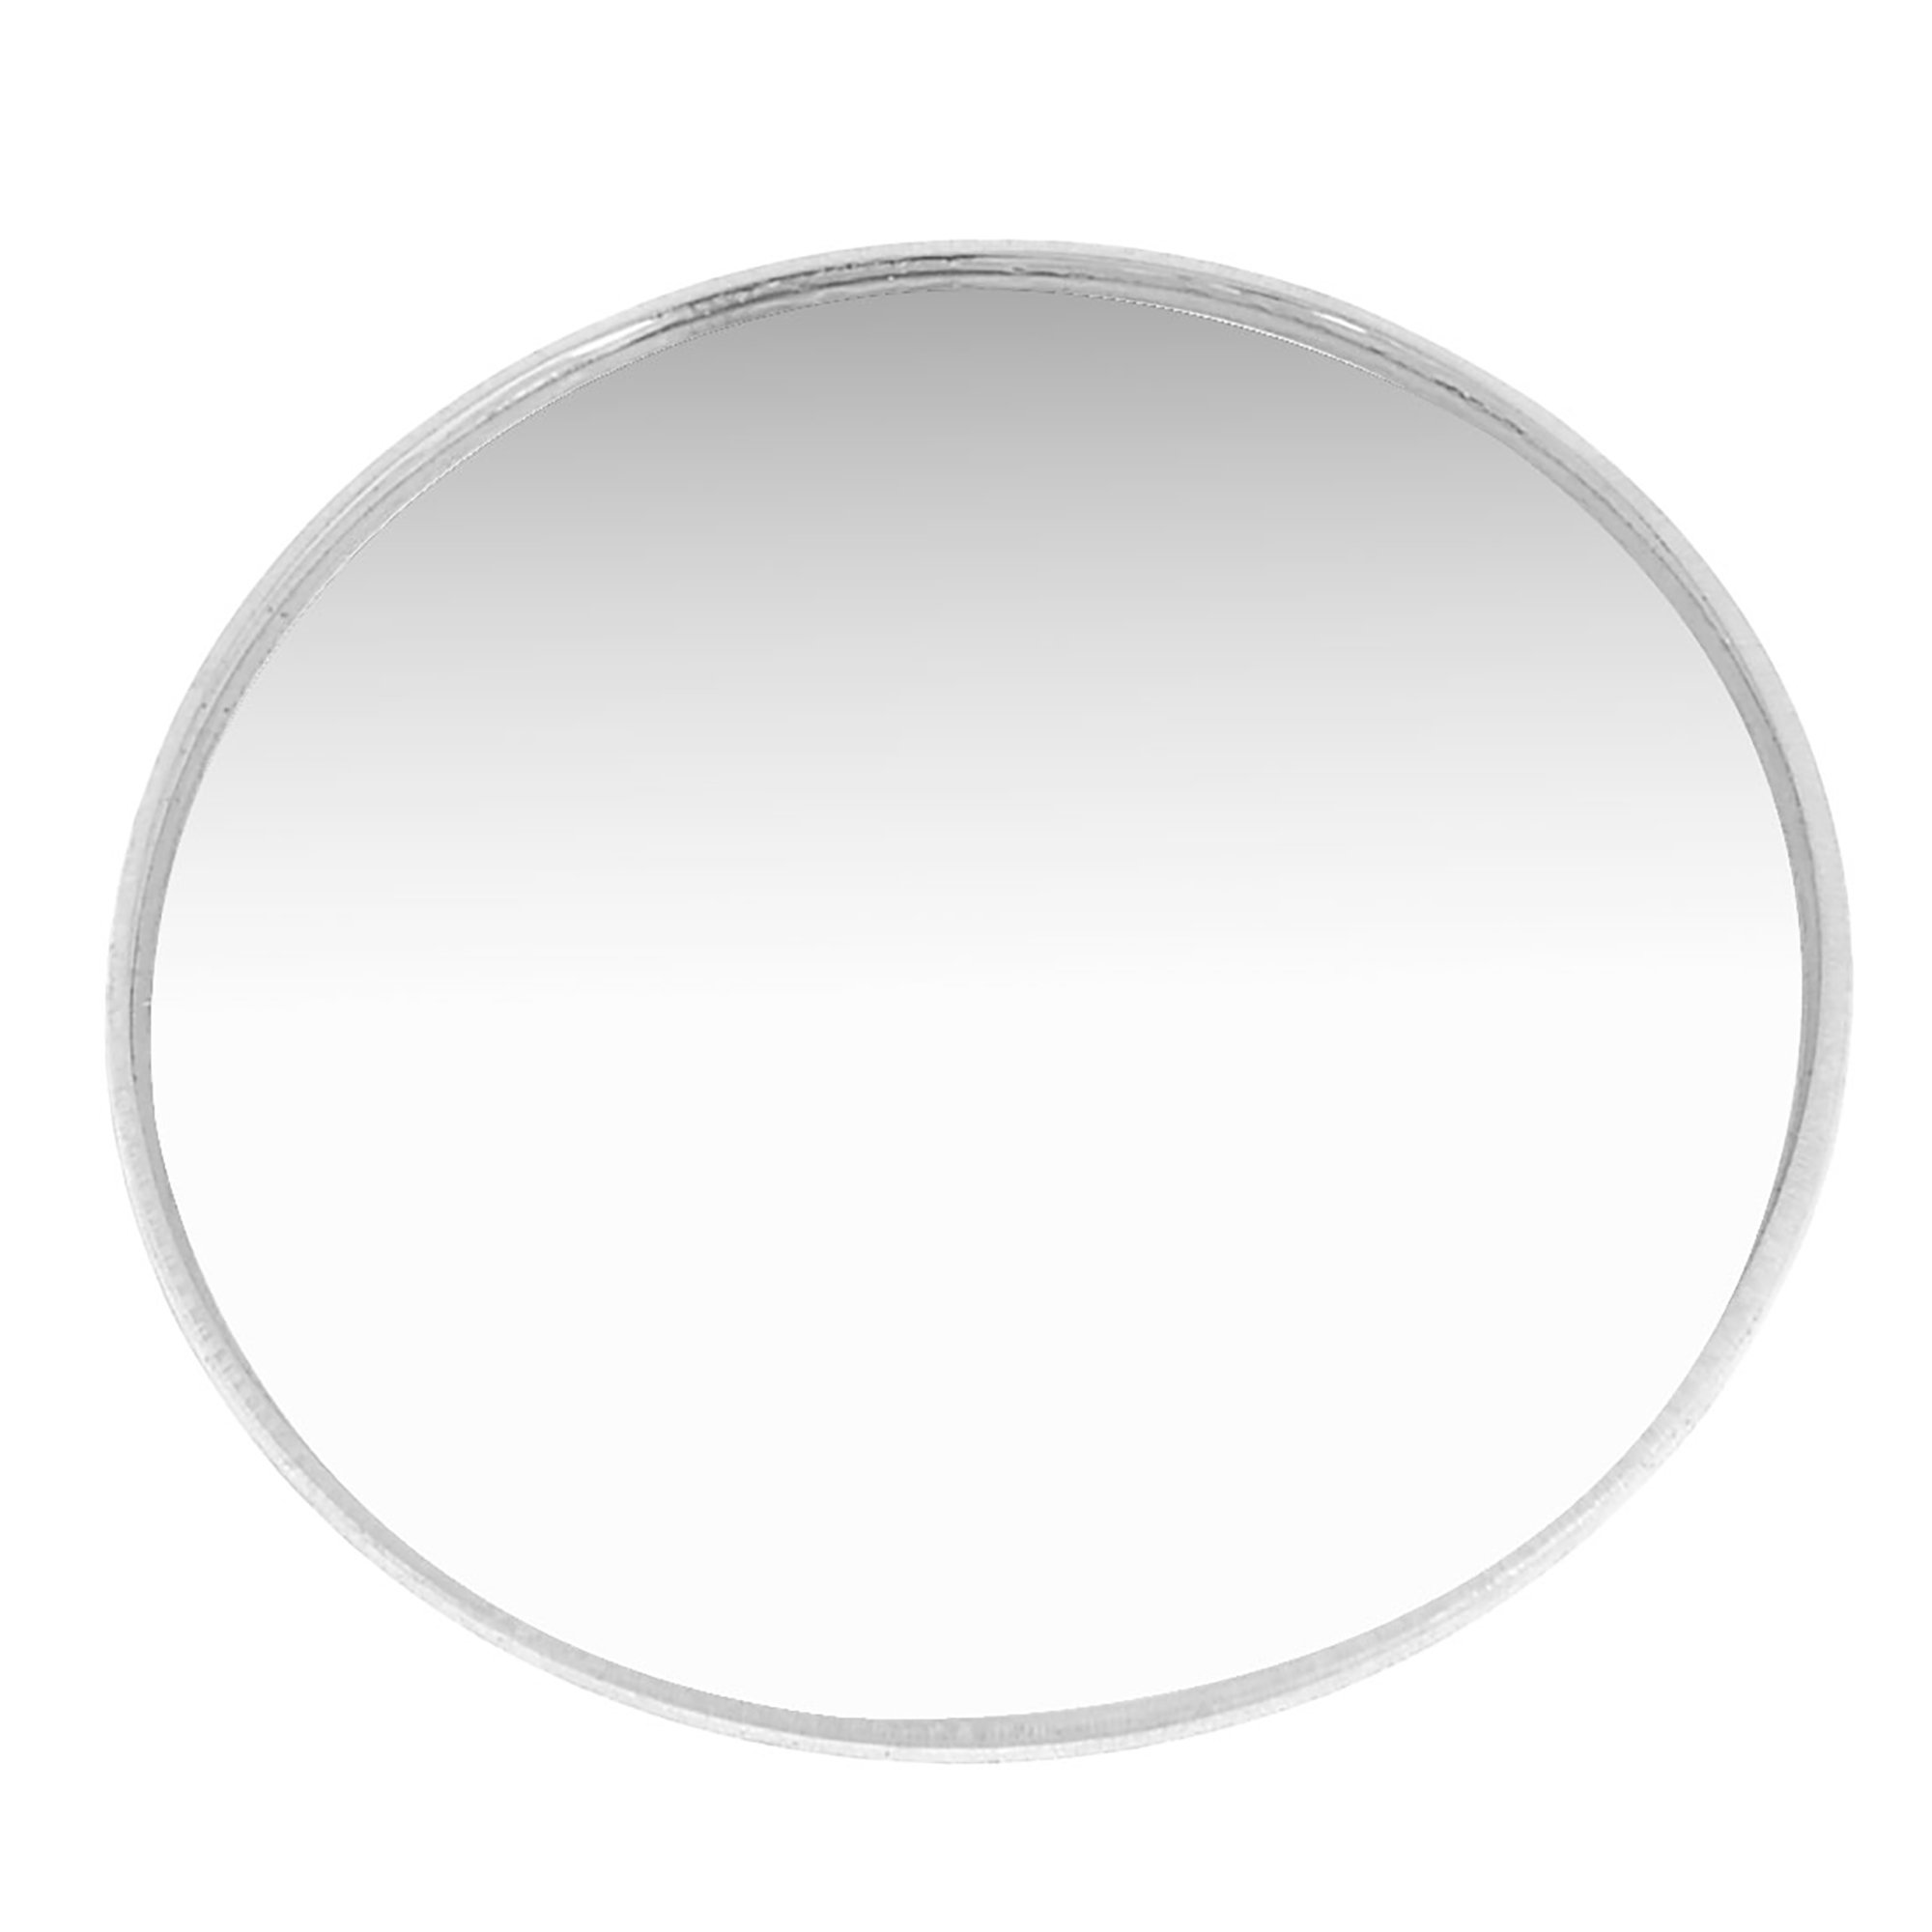 Silver Tone 75mm Round Adhesive Rear View Blind Spot Mirror for Automobile Car